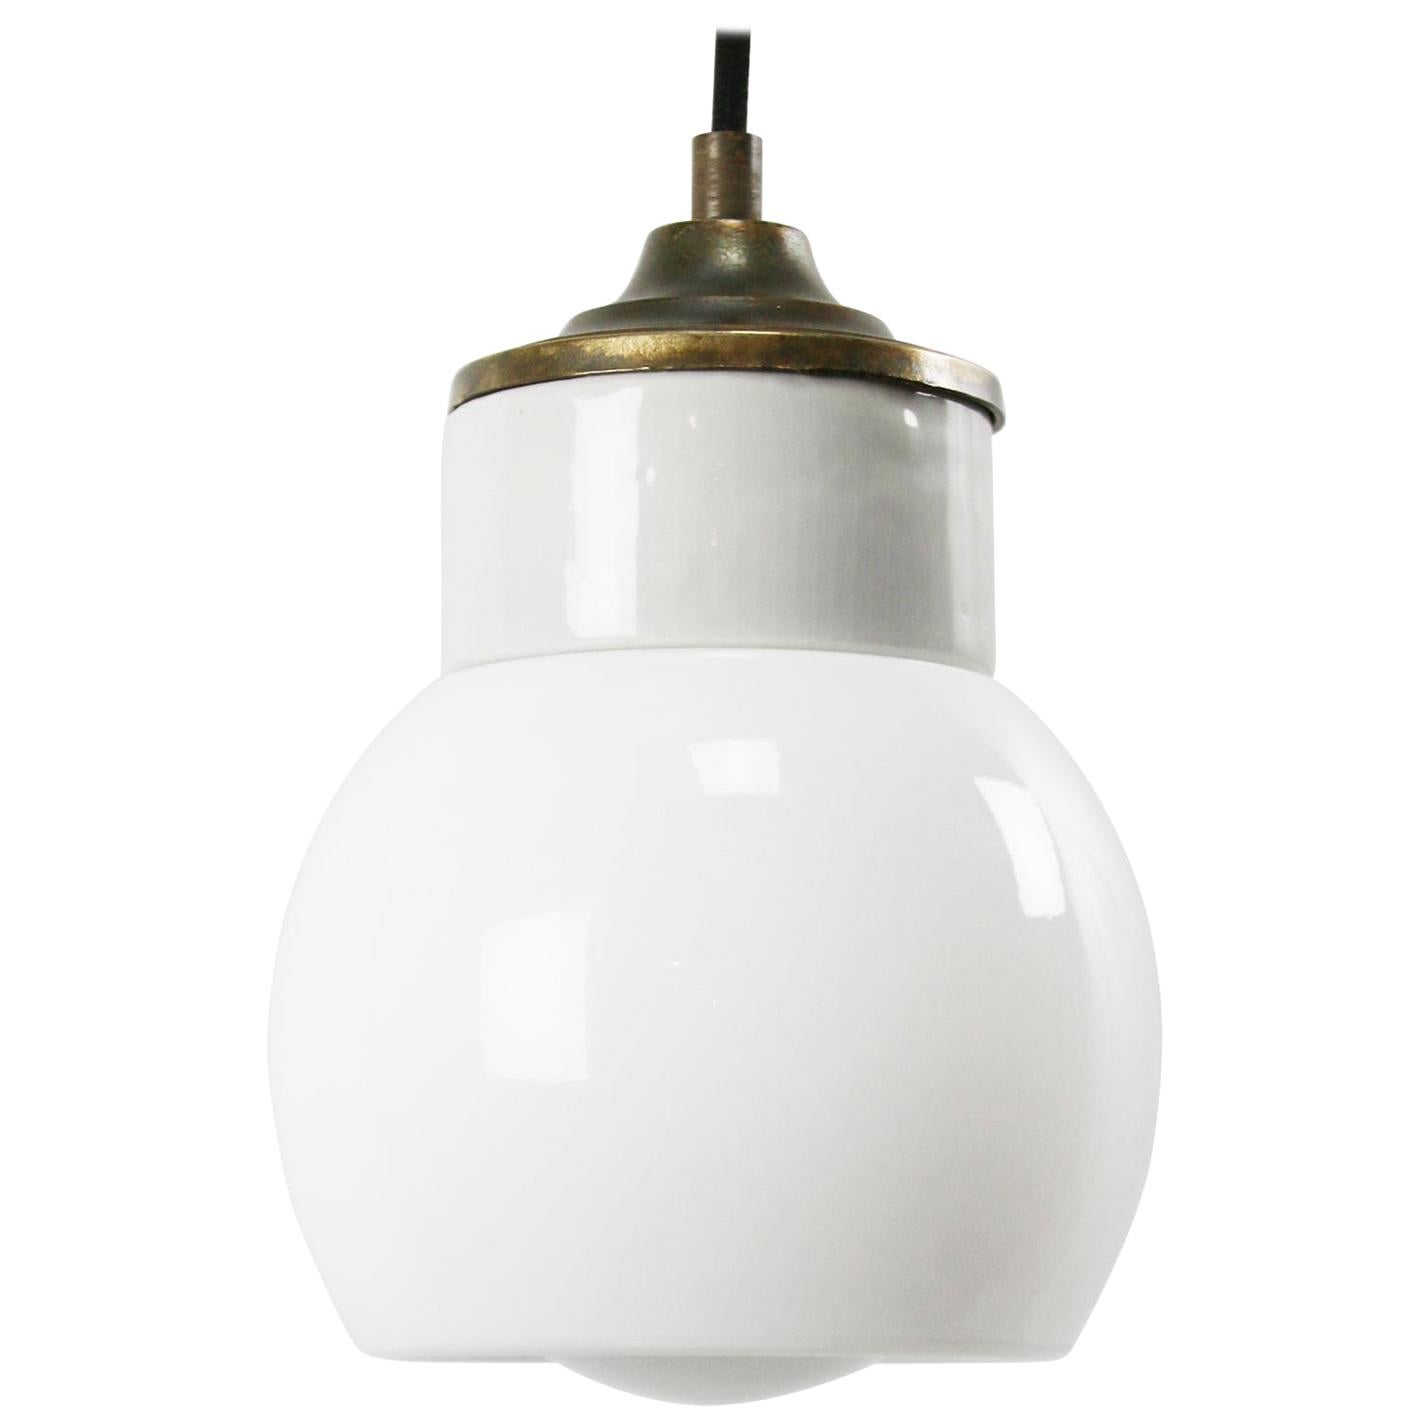 White Porcelain Opaline Glass Vintage Industrial Brass Pendant Lights